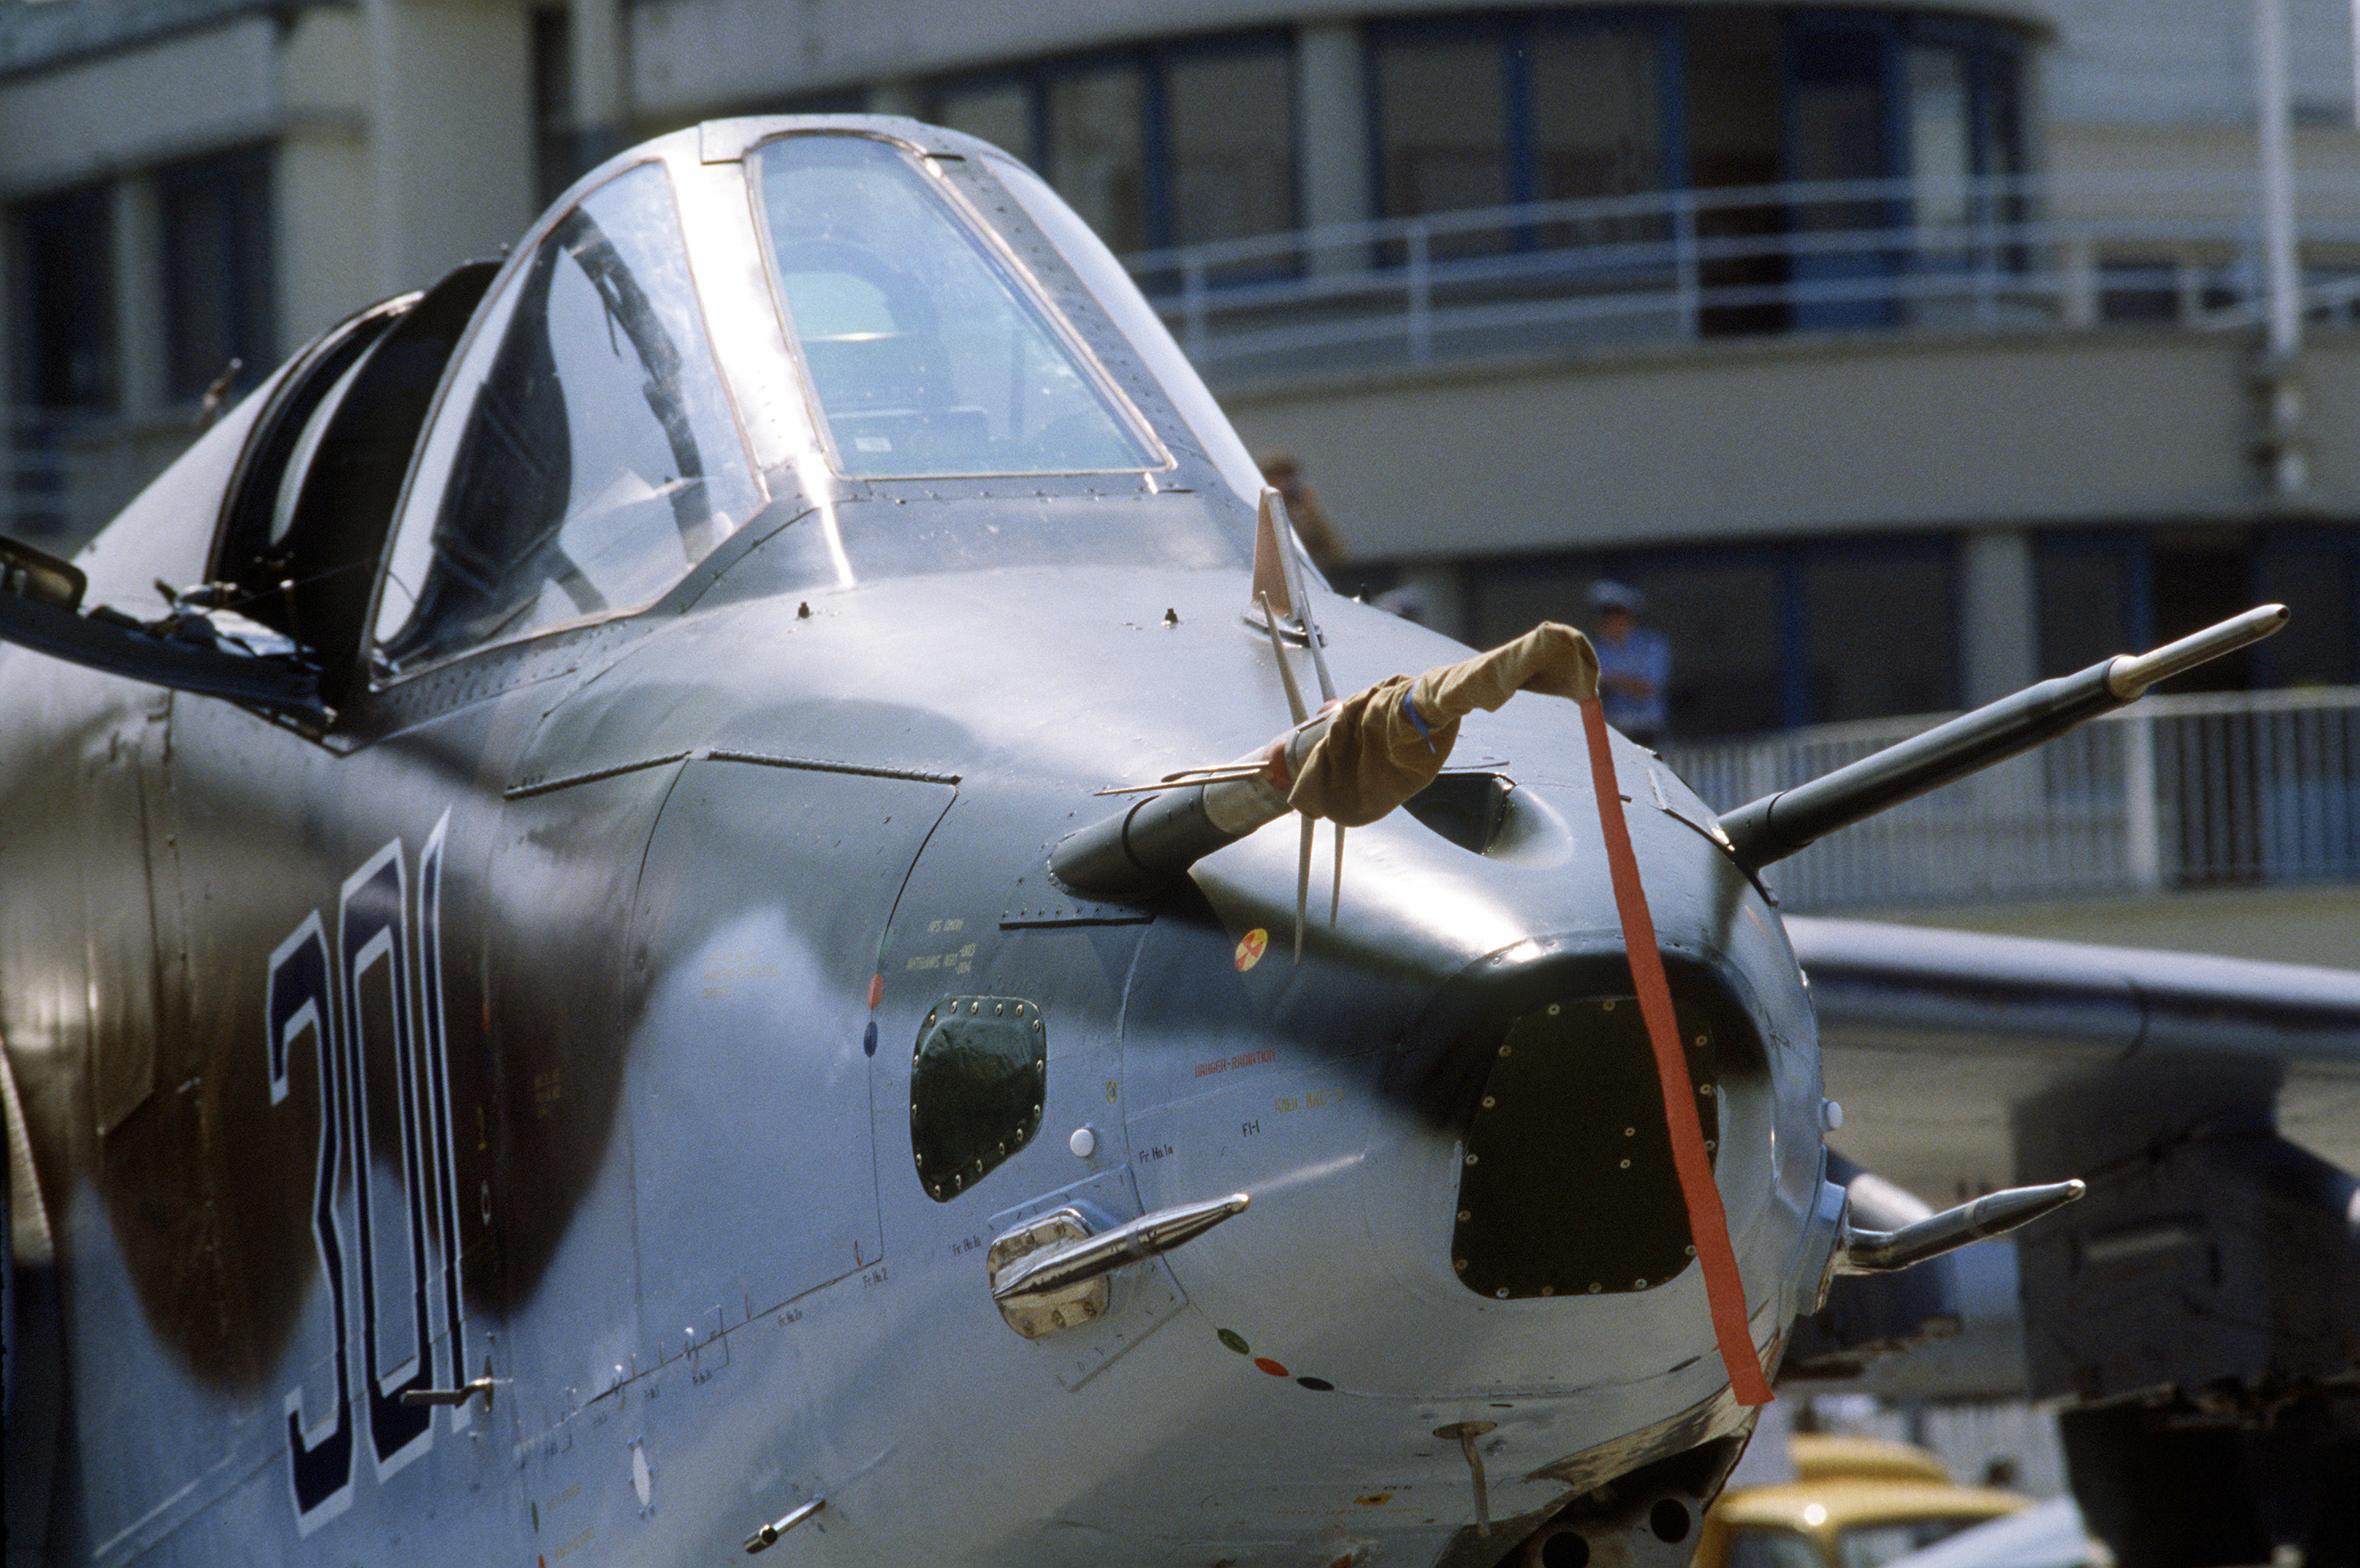 Su-25_Nose_view_-_Le_Bourget.JPEG